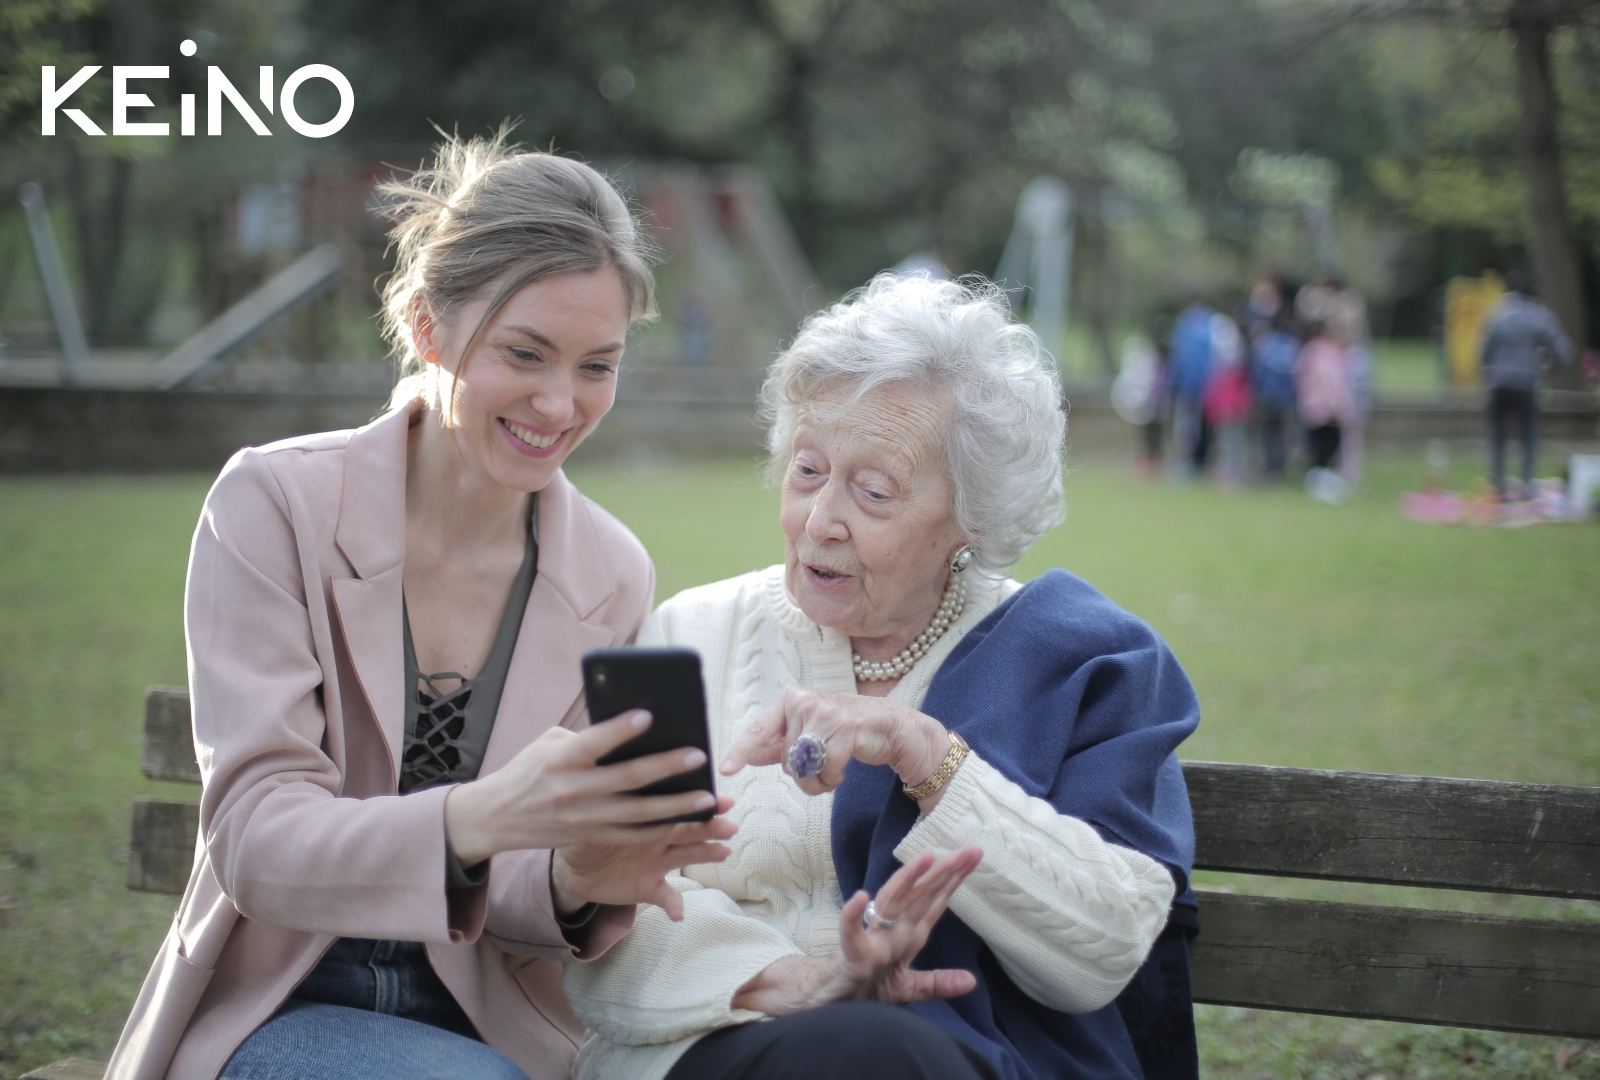 KEiNO Mobile Workforce™ is now used on-the-go serving over 750 000 individuals, both in the Oulu Region and Southwestern Finland. Turku followed Oulu by contracting and implementing KEiNO to collect, monitor and report on-field tasks of social emergency services.